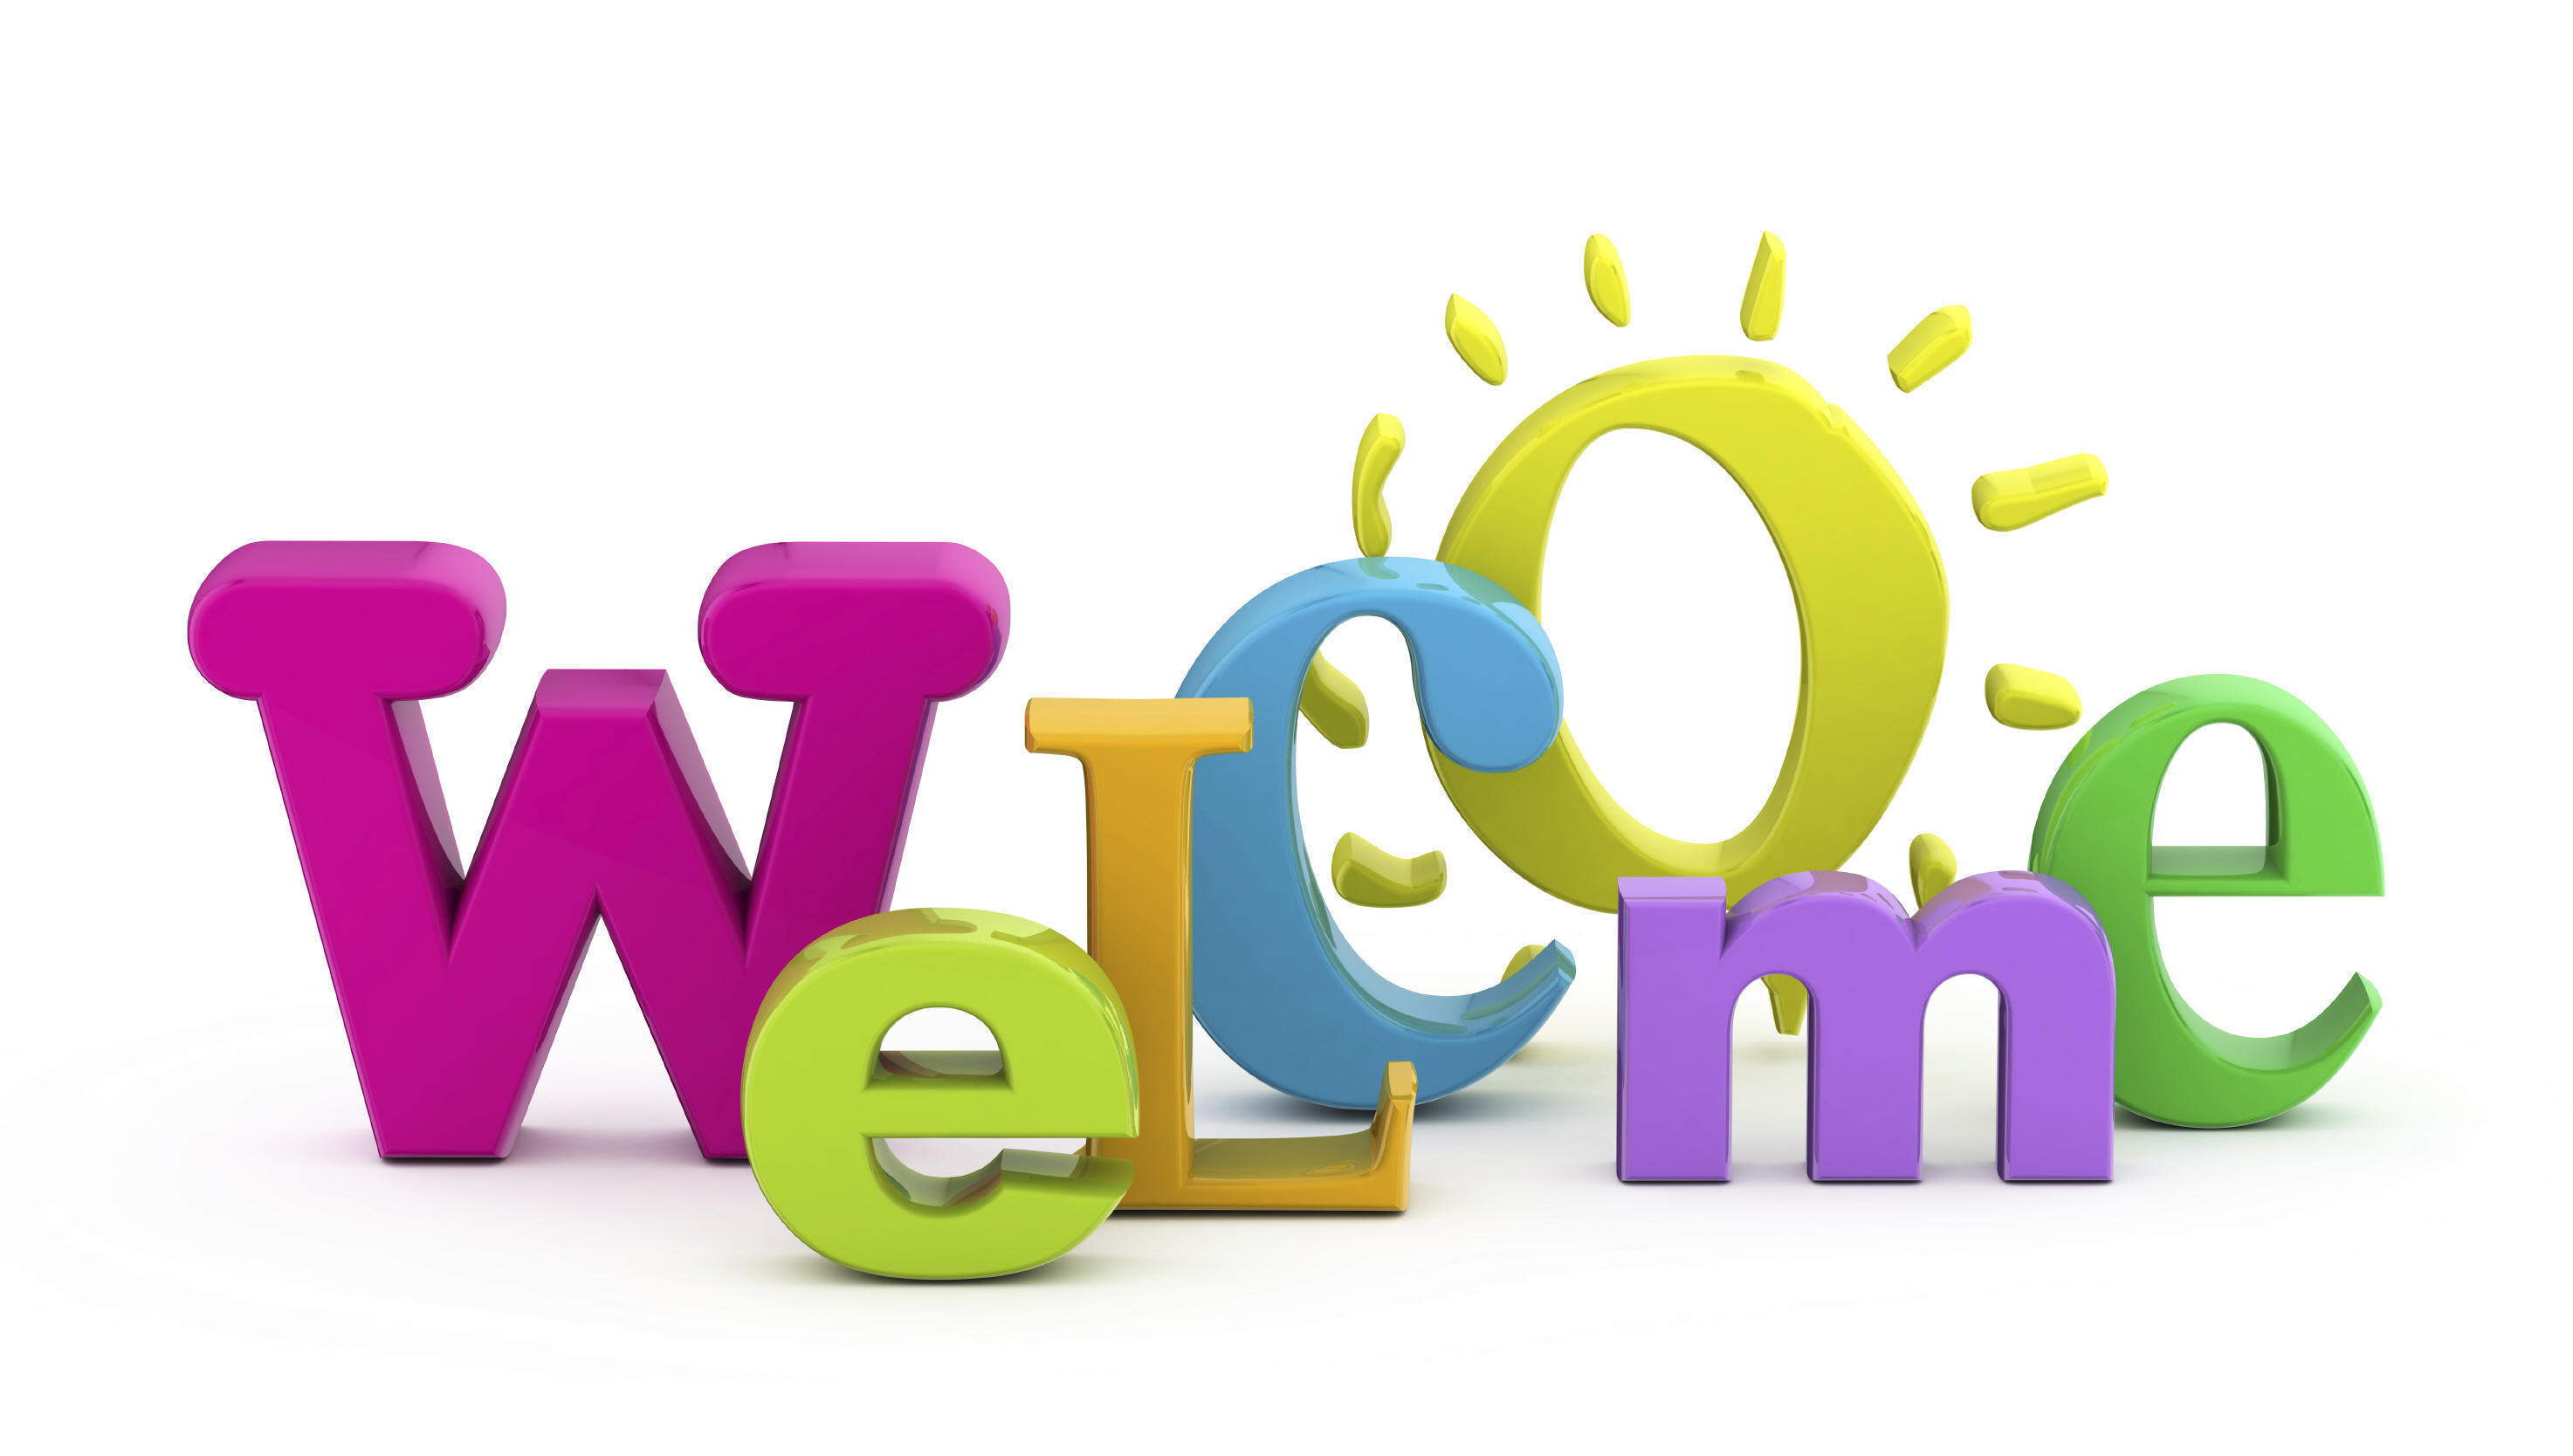 Welcome Wallpapers High Quality Download Free